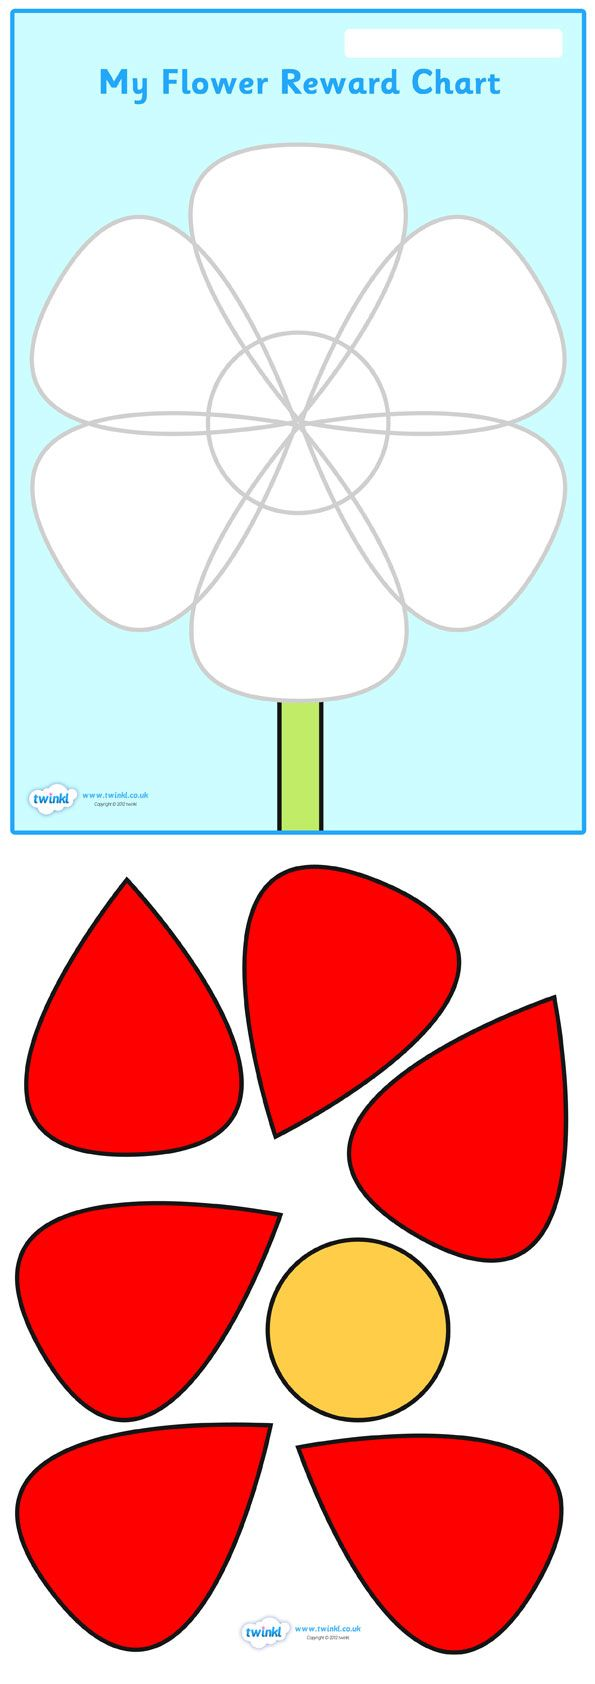 Twinkl Resources >> Flower Petal Reward Chart  >> Classroom printables for Pre-School, Kindergarten, Elementary School and beyond! Rewards, Reward Charts, Class Management, Behavior